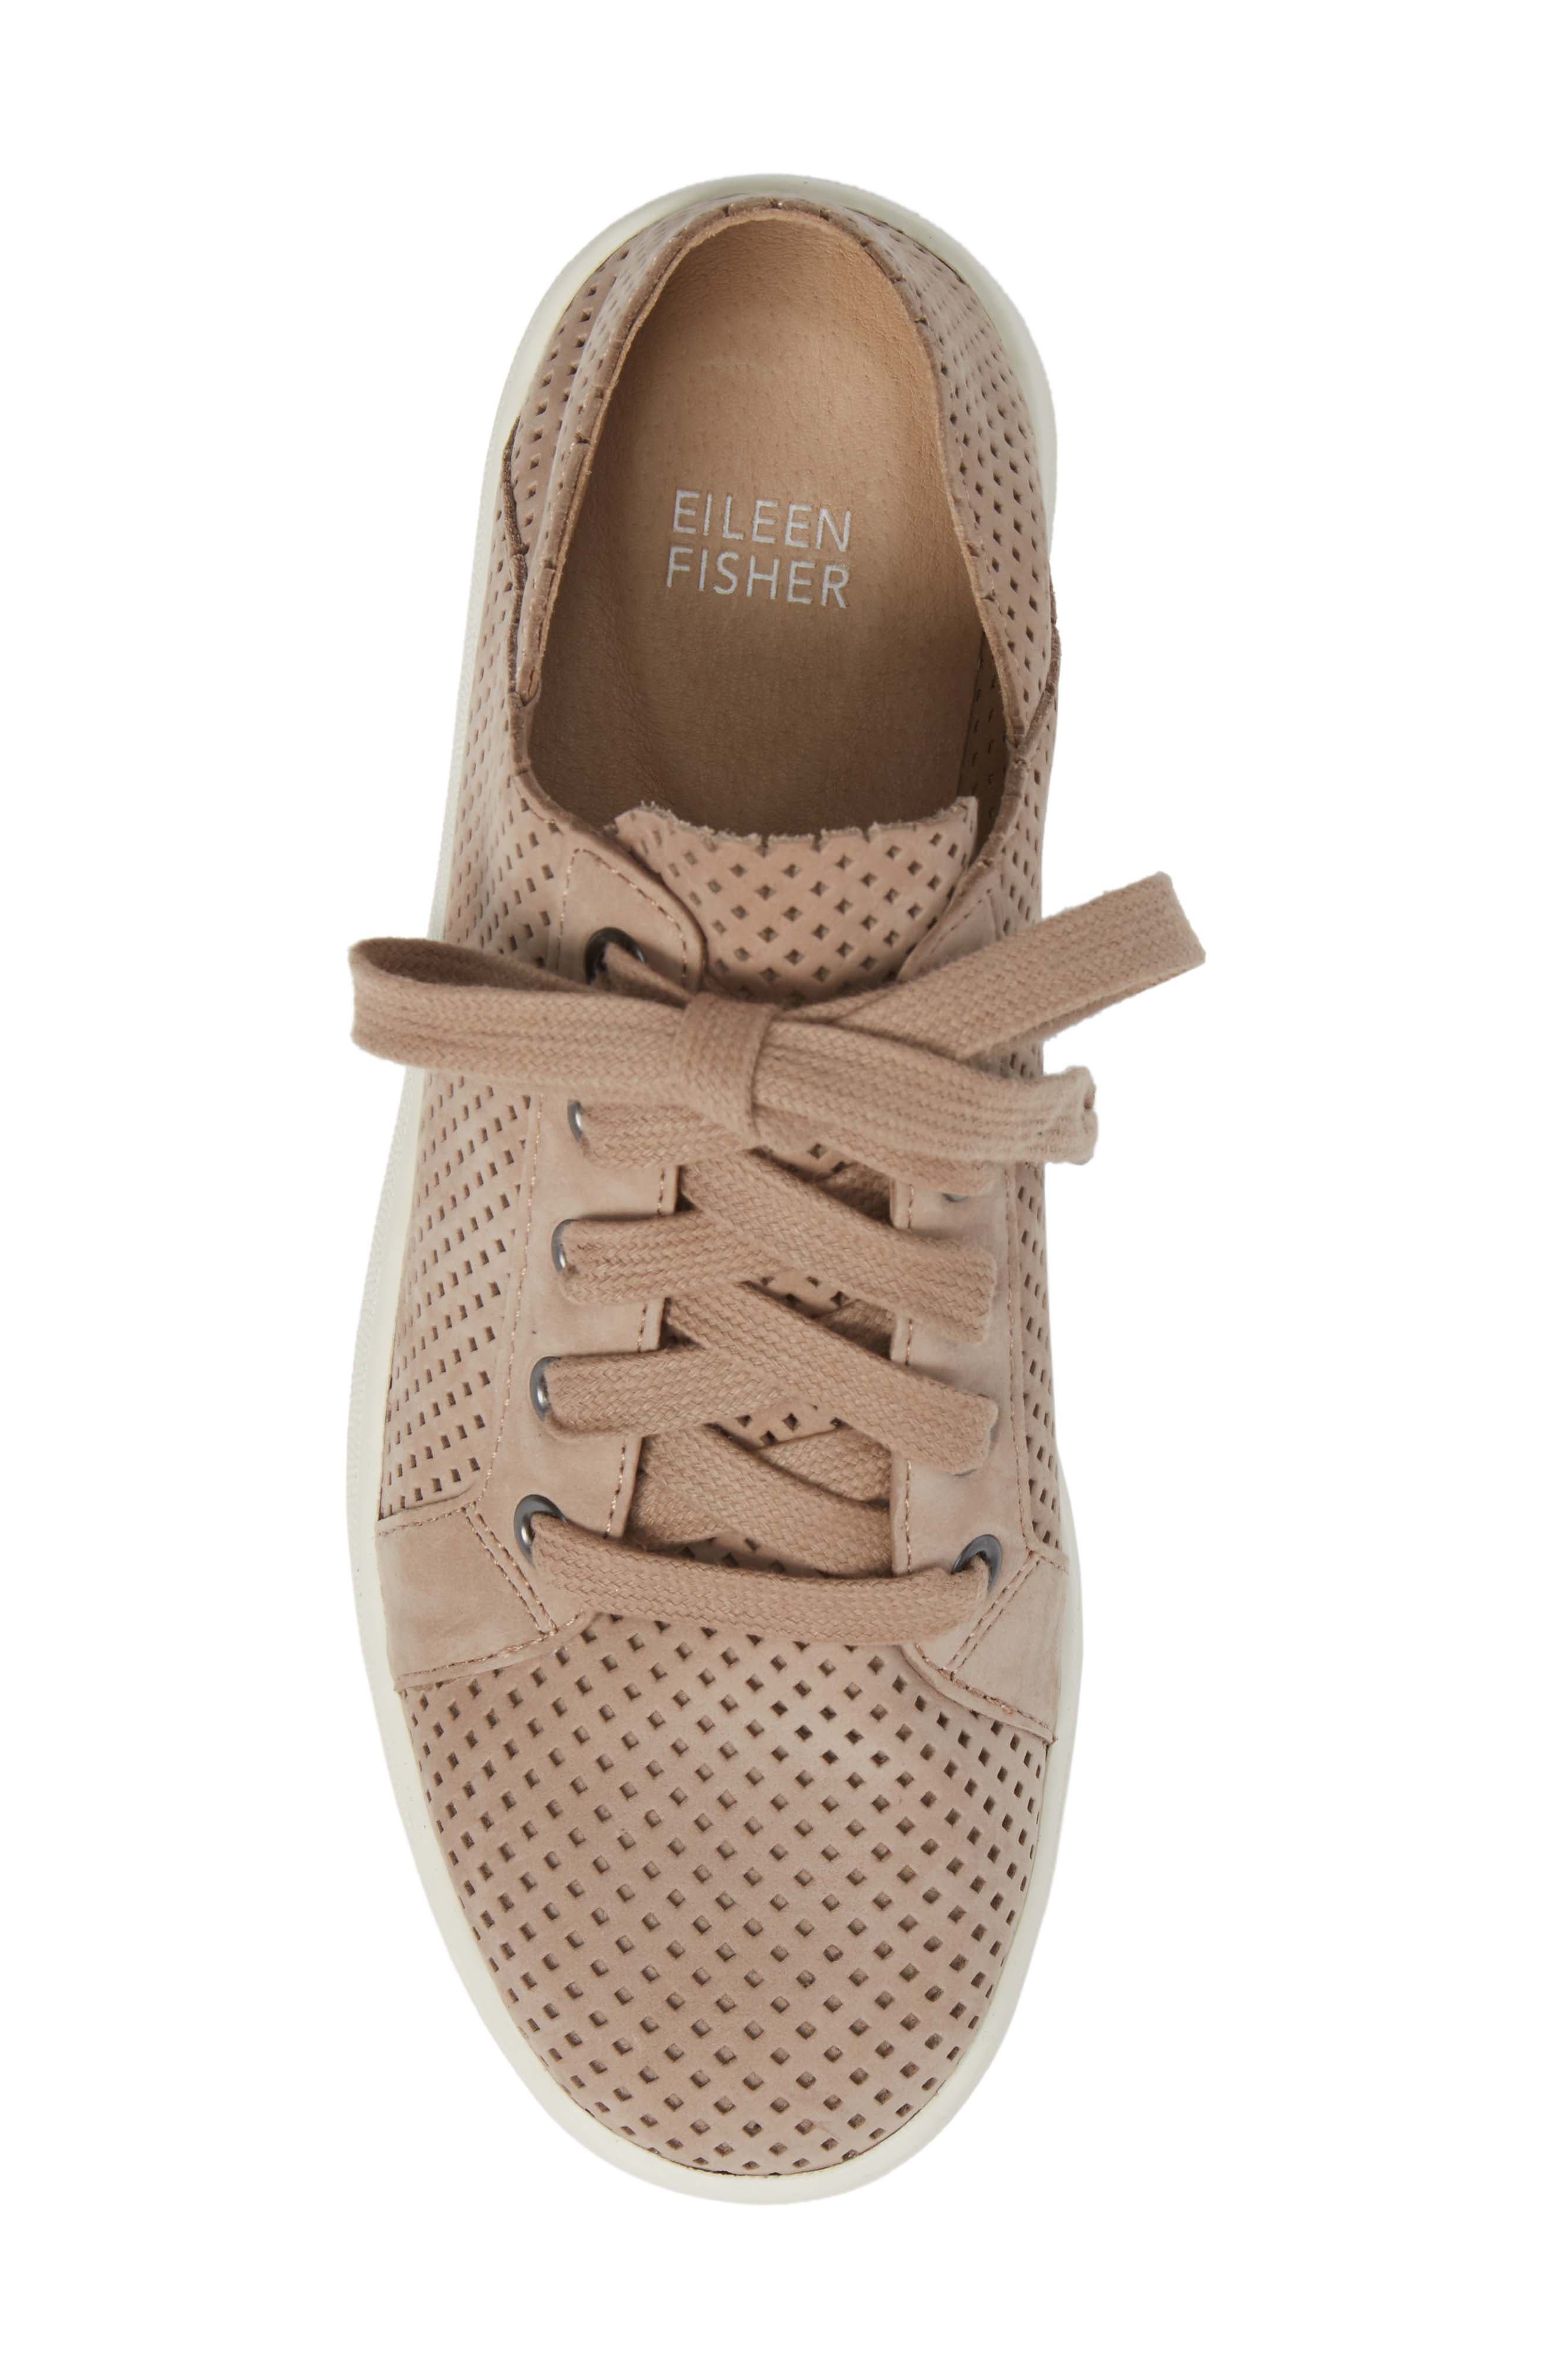 Clifton Perforated Sneaker,                             Alternate thumbnail 5, color,                             Earth Perforated Leather